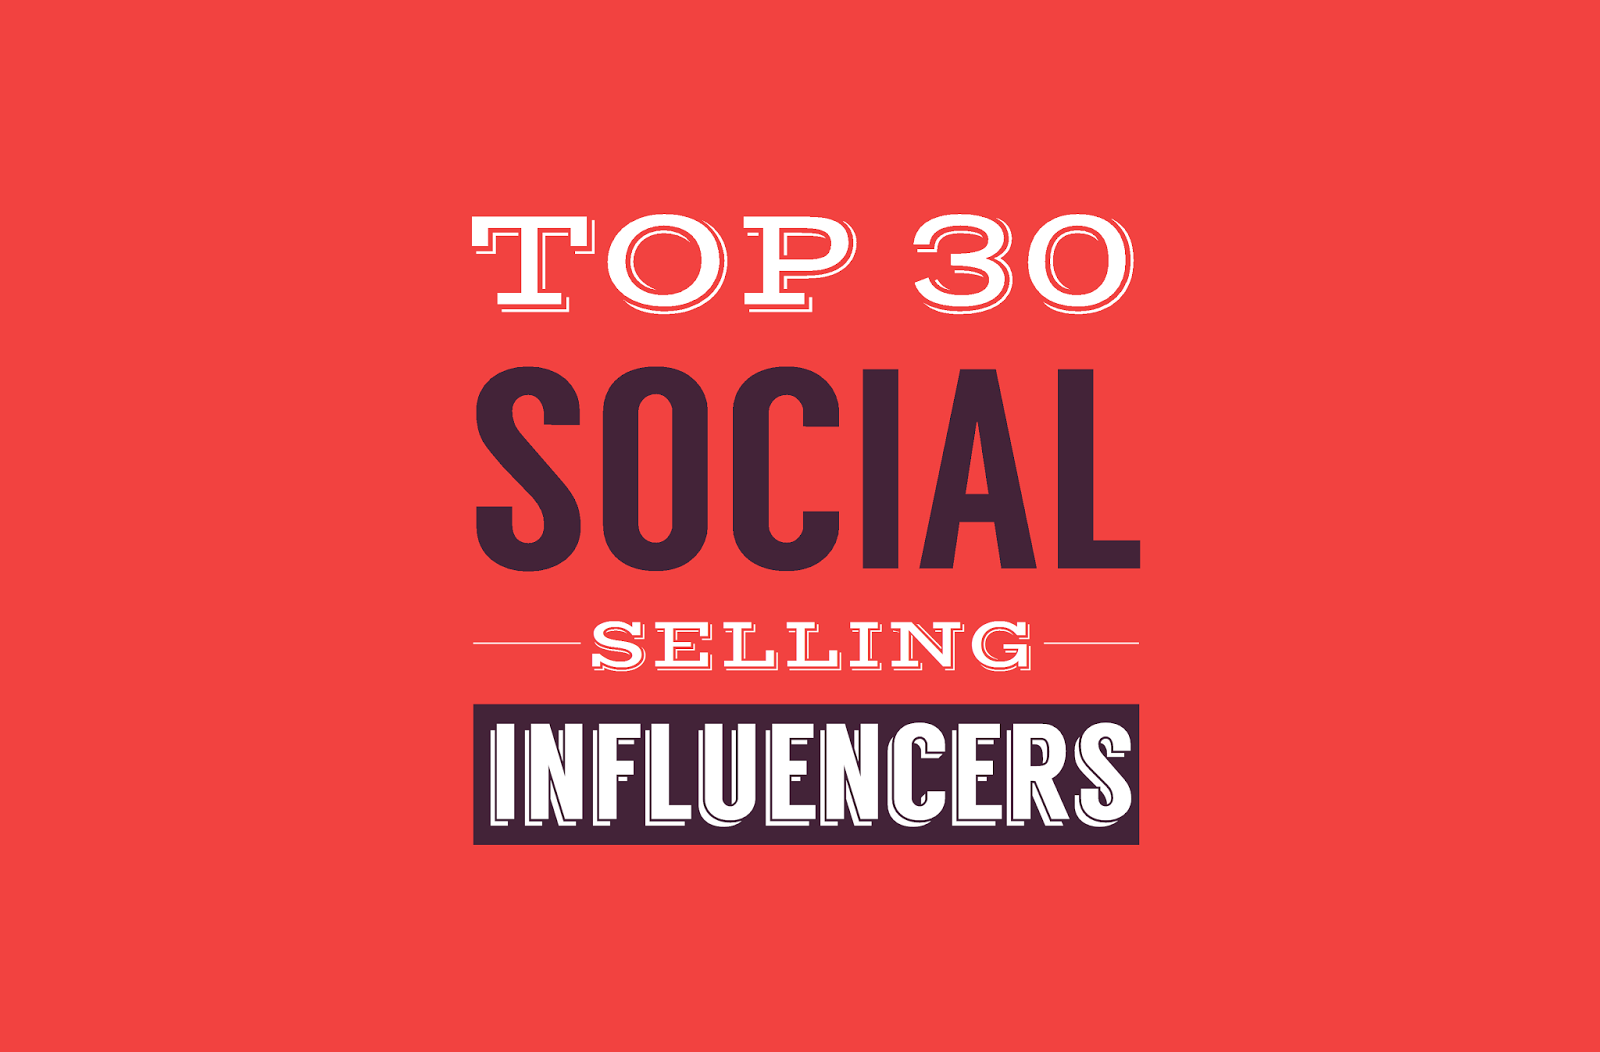 Top 30 Social Selling Influencers - infographic